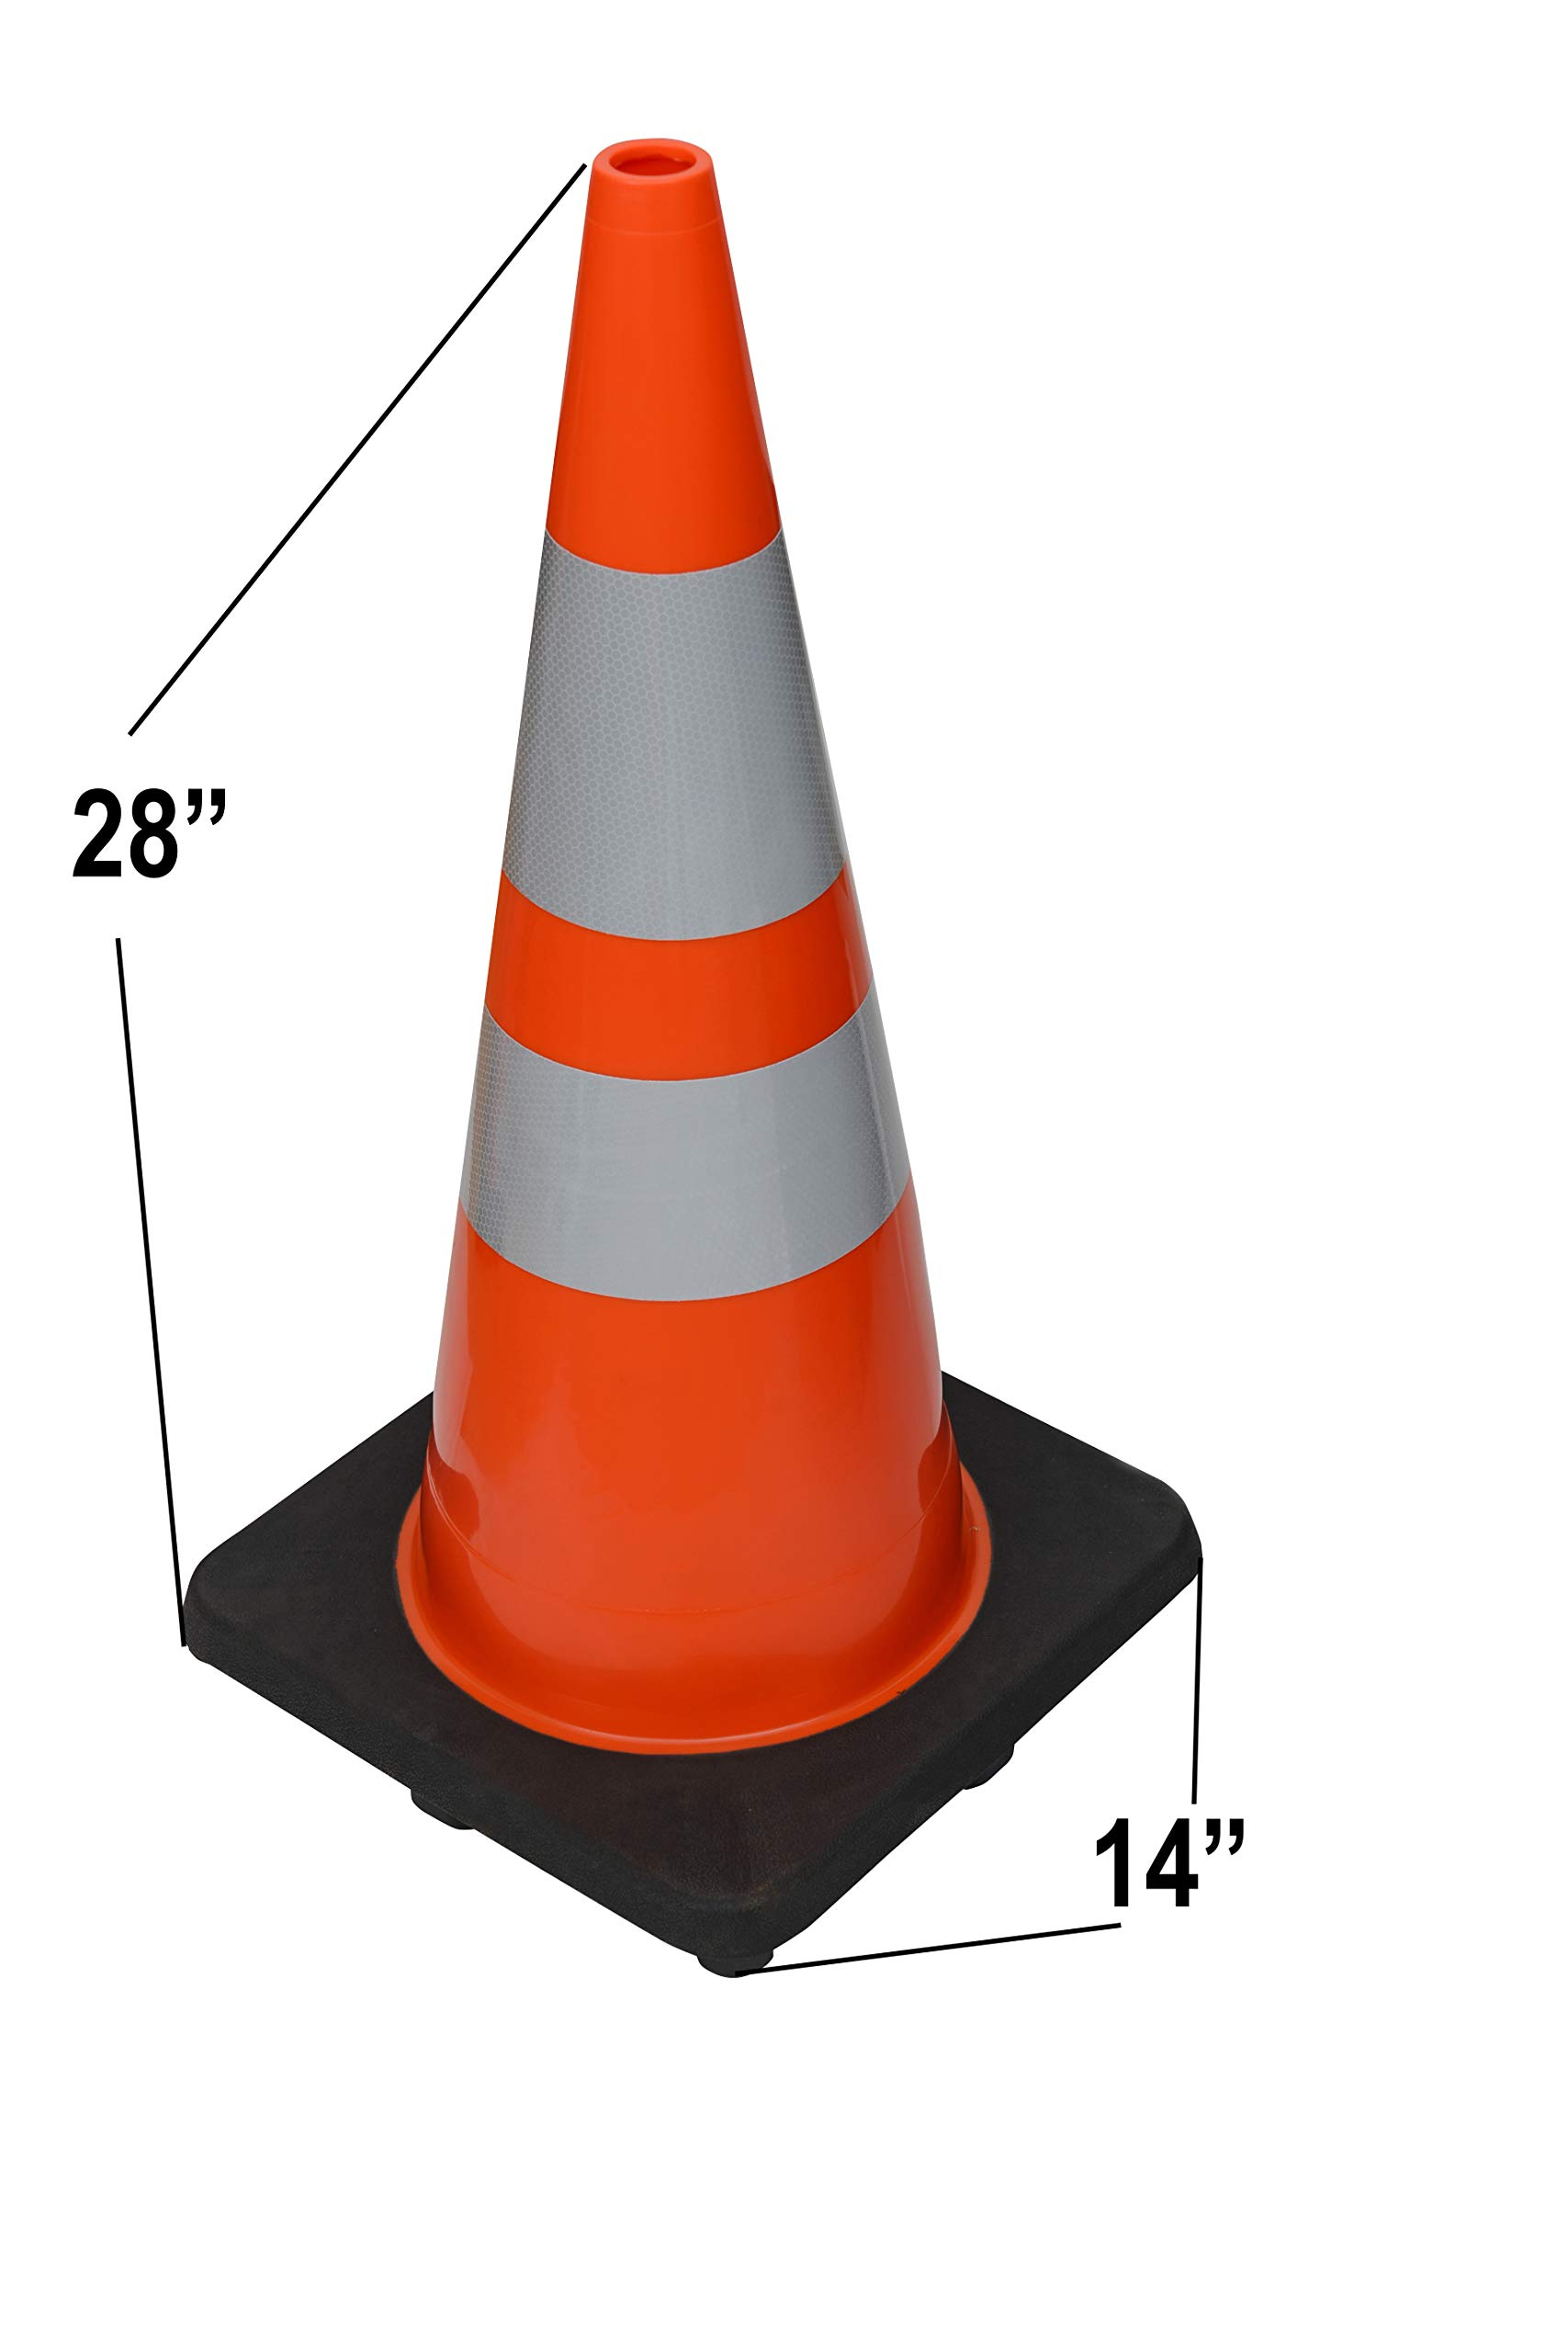 CJ Safety 28'' Height Orange PVC Traffic Safety Cones with Black Base & 6'' + 4'' Reflective Collars (8 Cones) by CJ Safety (Image #4)